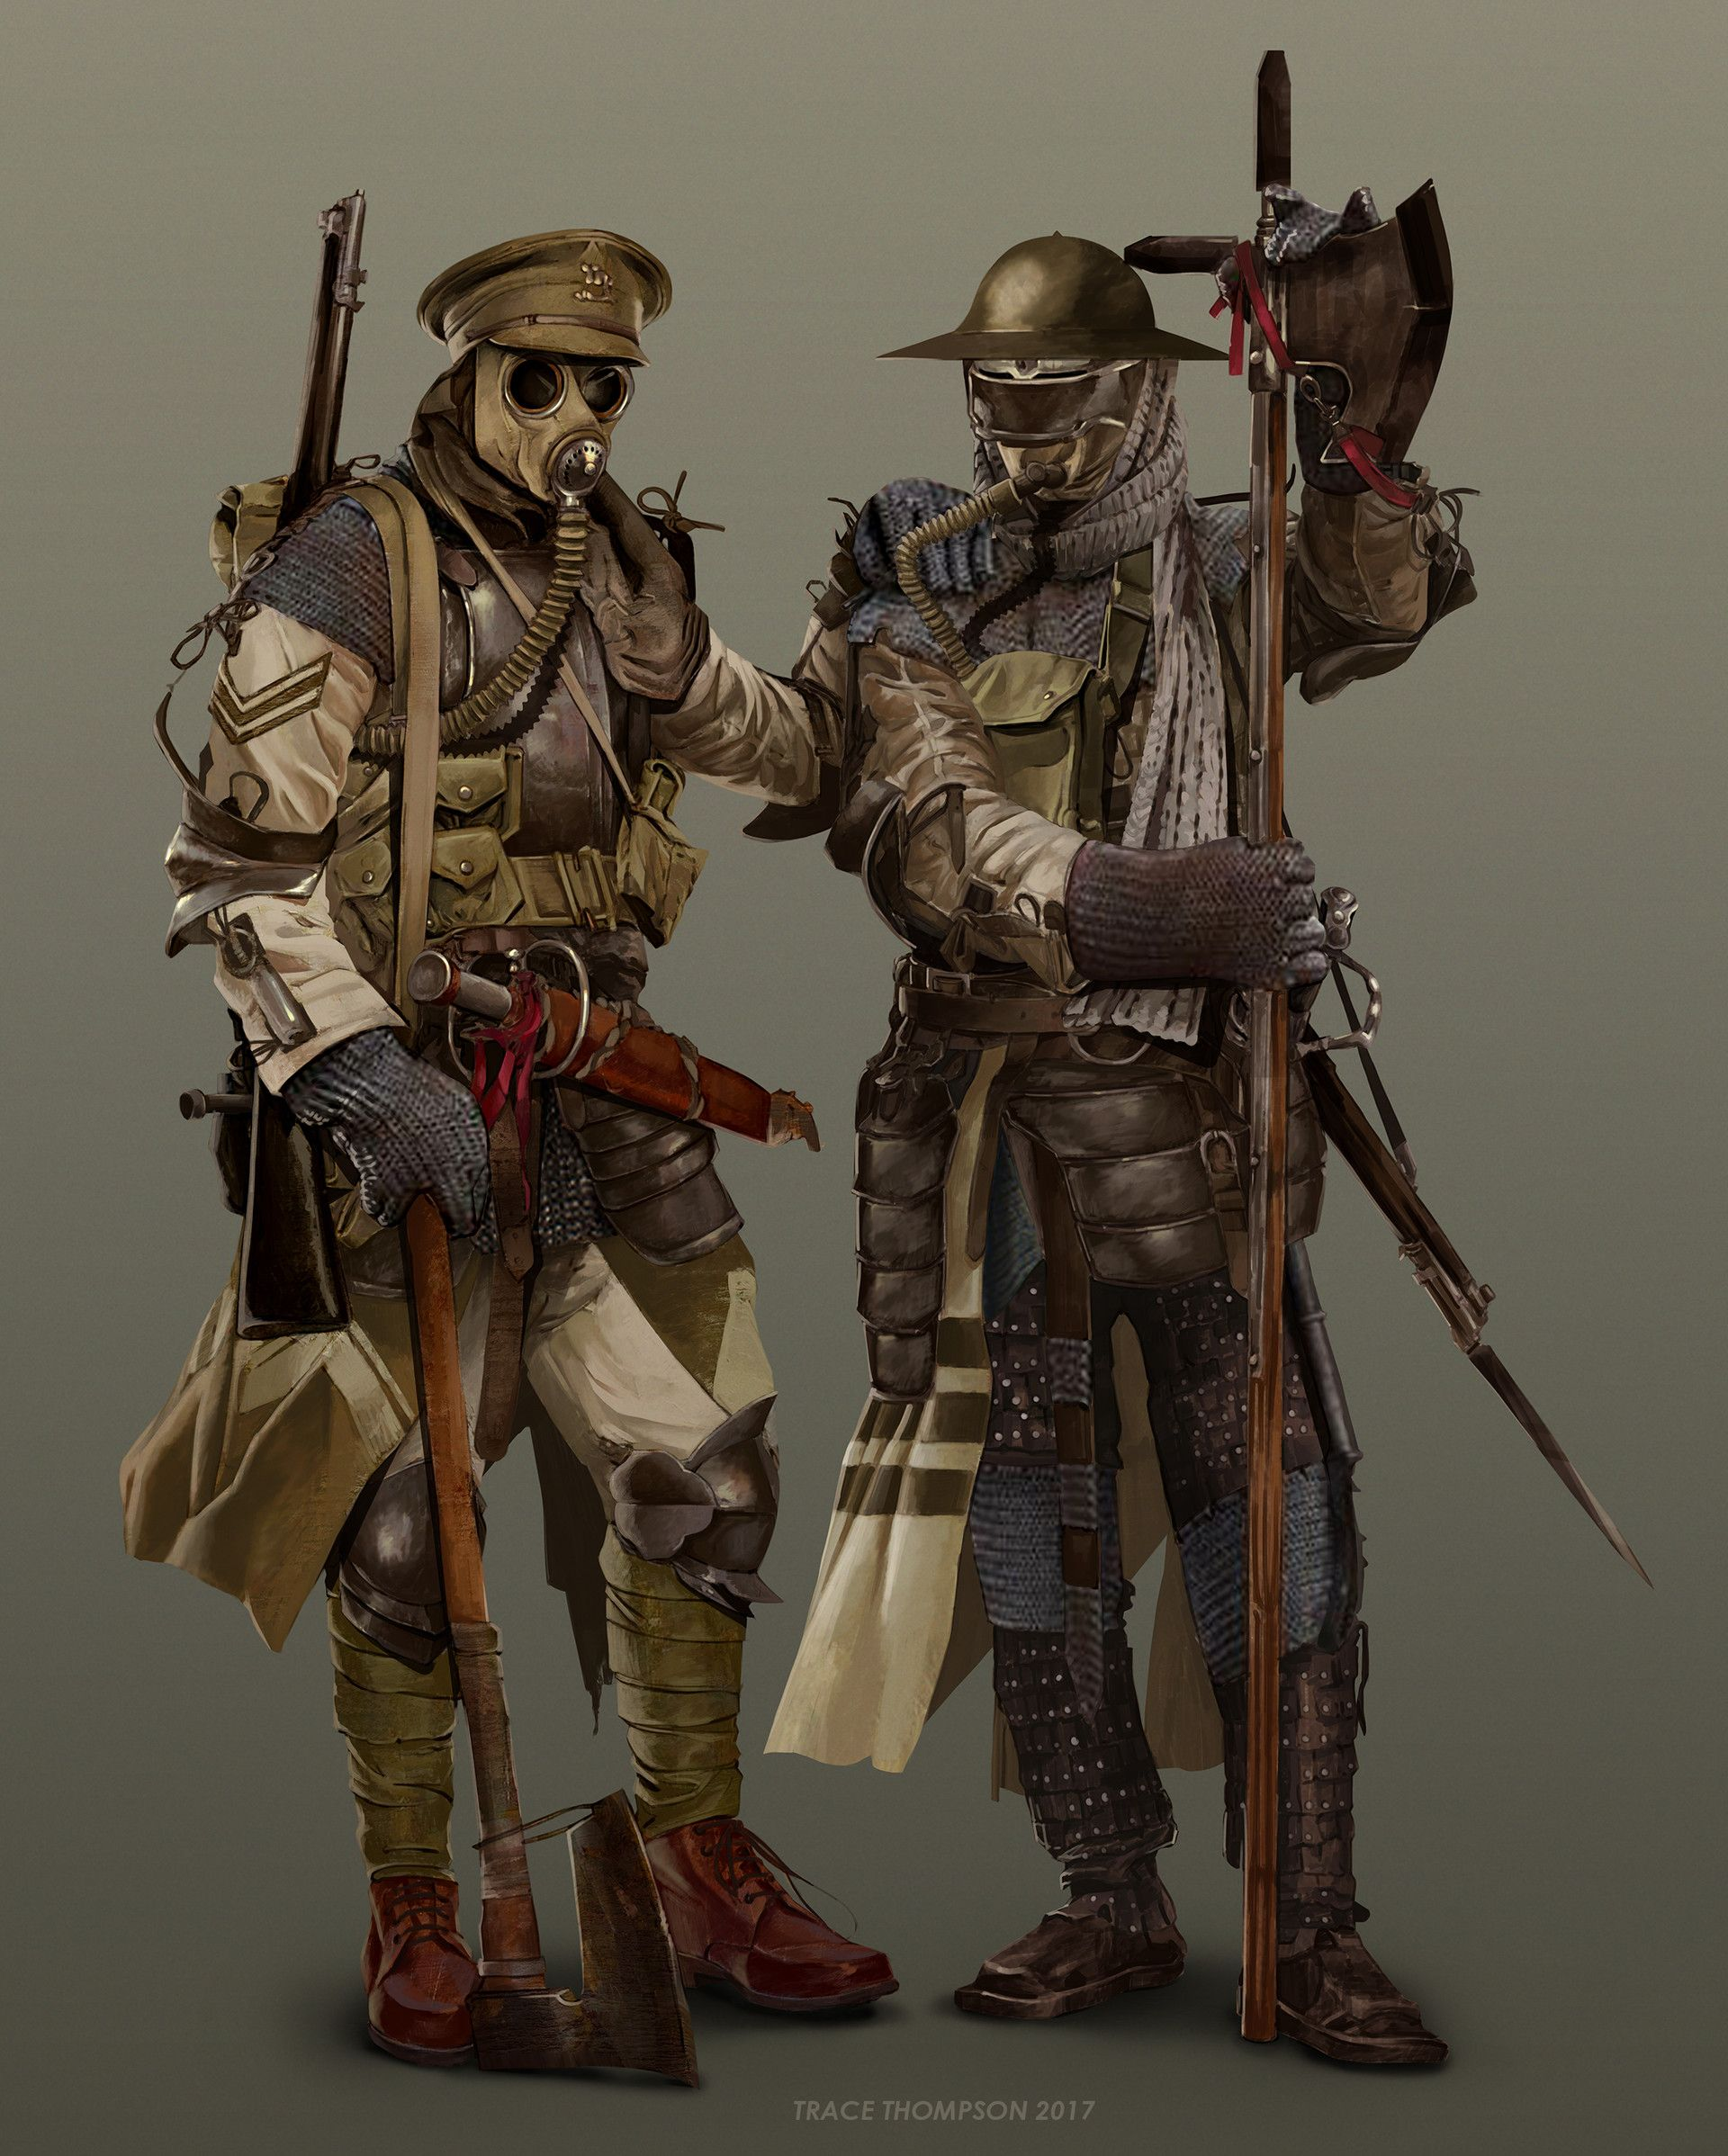 WW1 Trench Knight by Trace Thompson on ArtStation. | art ...